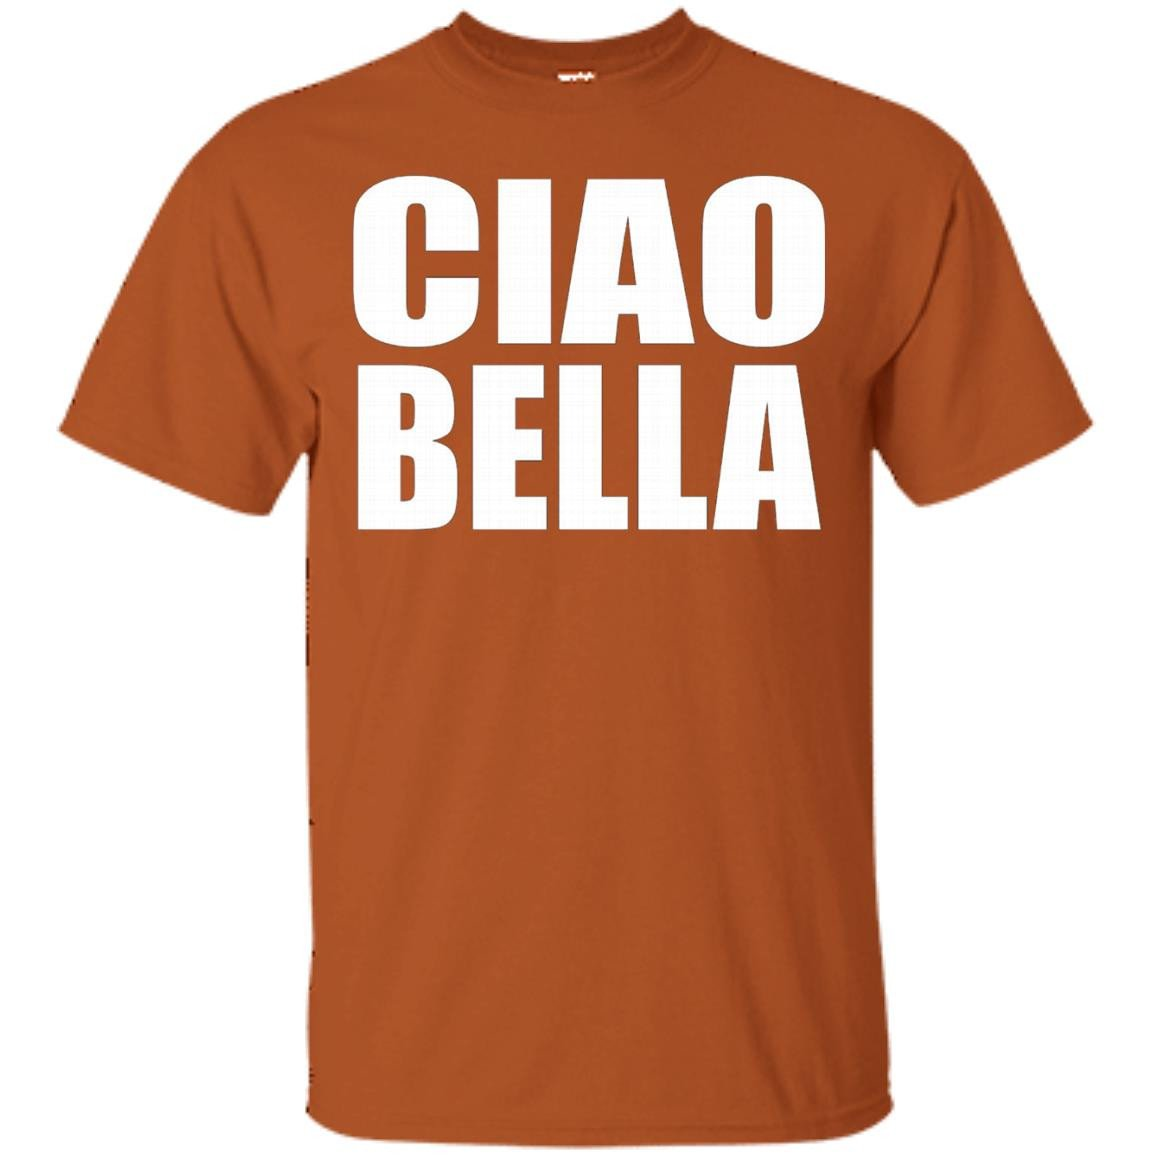 Ciao Bella - Hi Beautiful - Italian Greeting Quote T-Shirt